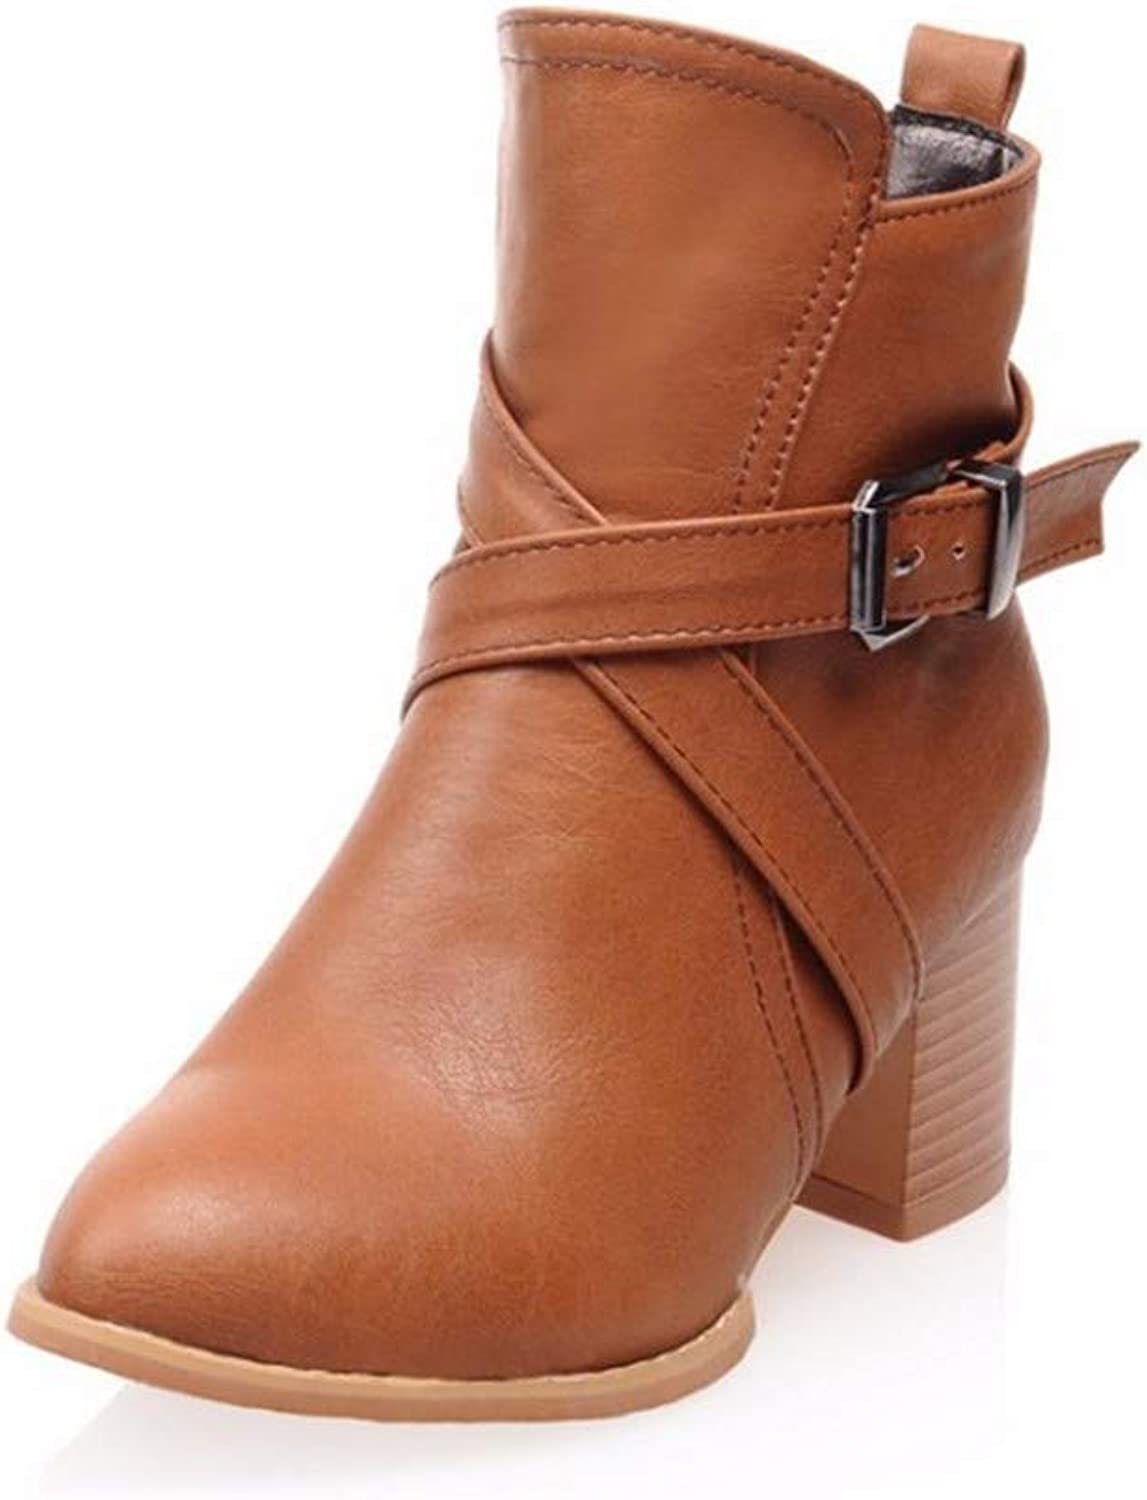 The Code and Pointed Boots Boots Short Soft Soled high-Heeled shoes